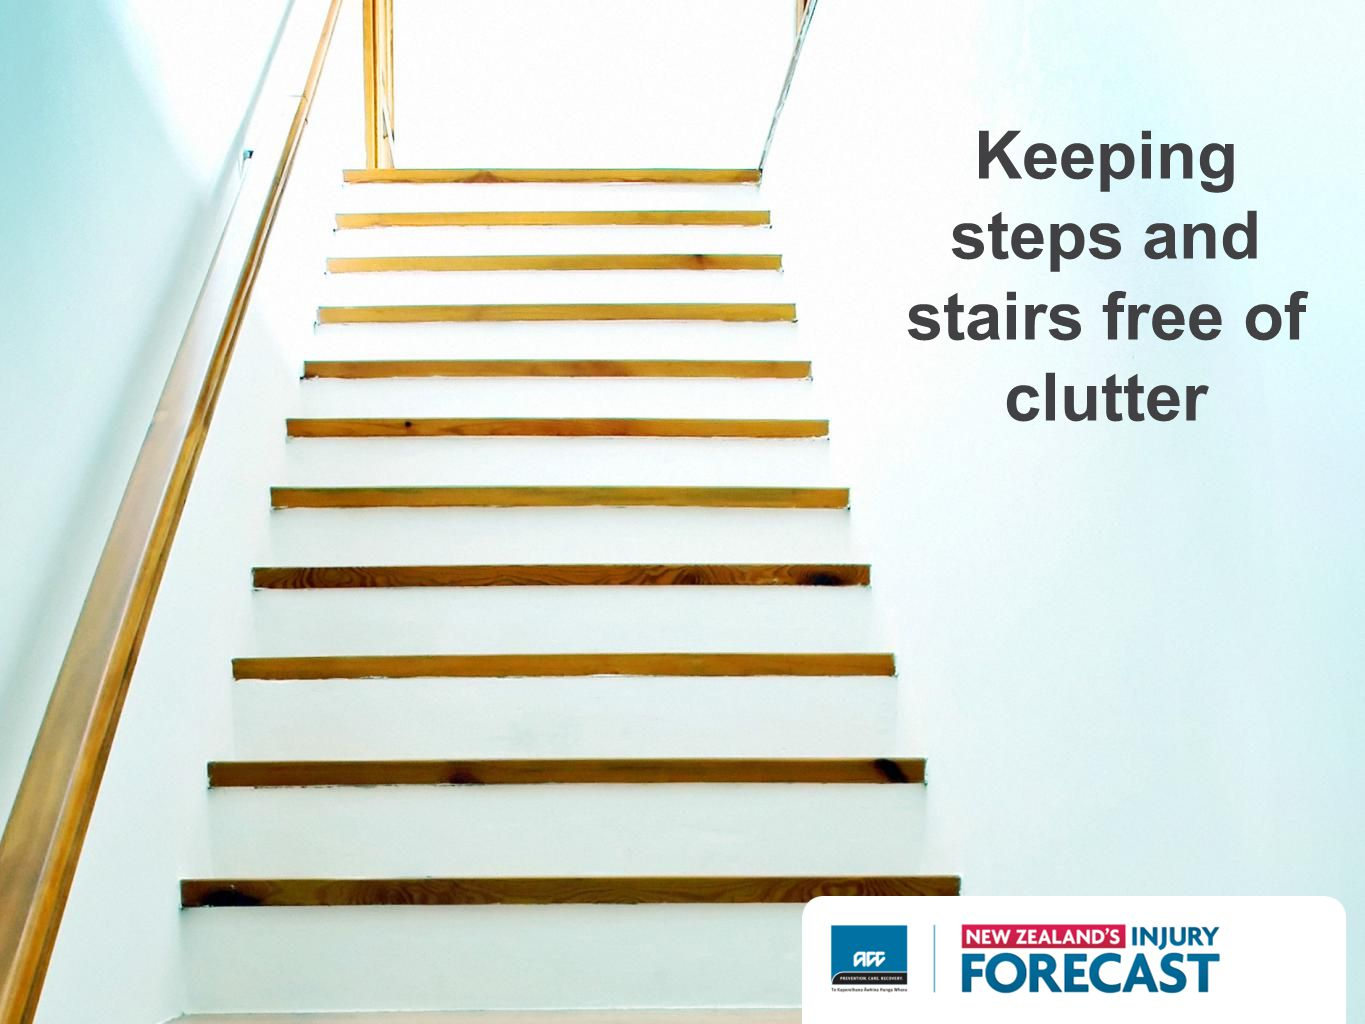 Keeping steps and stairs free of clutter